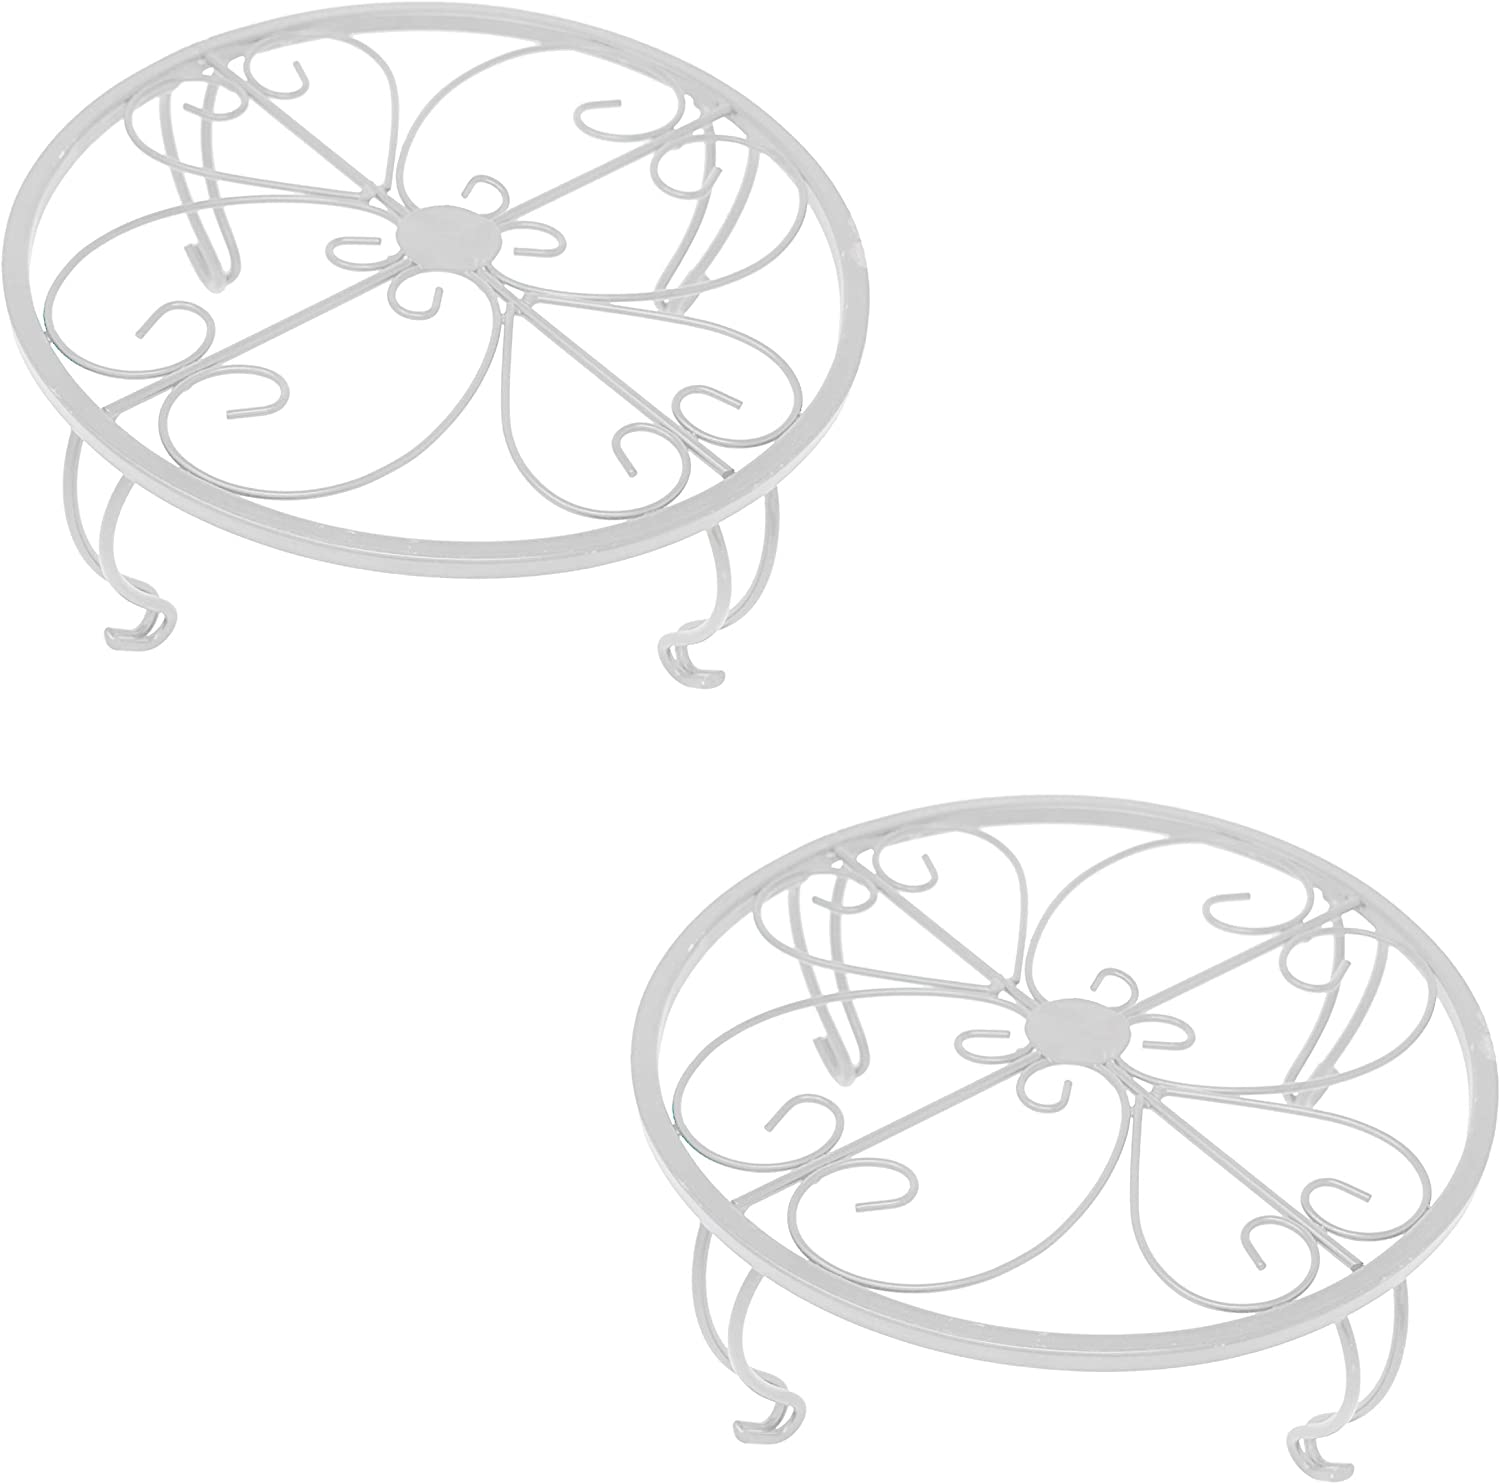 gb Home Collection Iron Potted Plant Stand, White, 2-Pack, Powder Coated Rust Resistant Metal, Decorative Indoor Outdoor Flower Pot Holder Saucer, Rustproof Round Heavy Garden Planter Support Rack